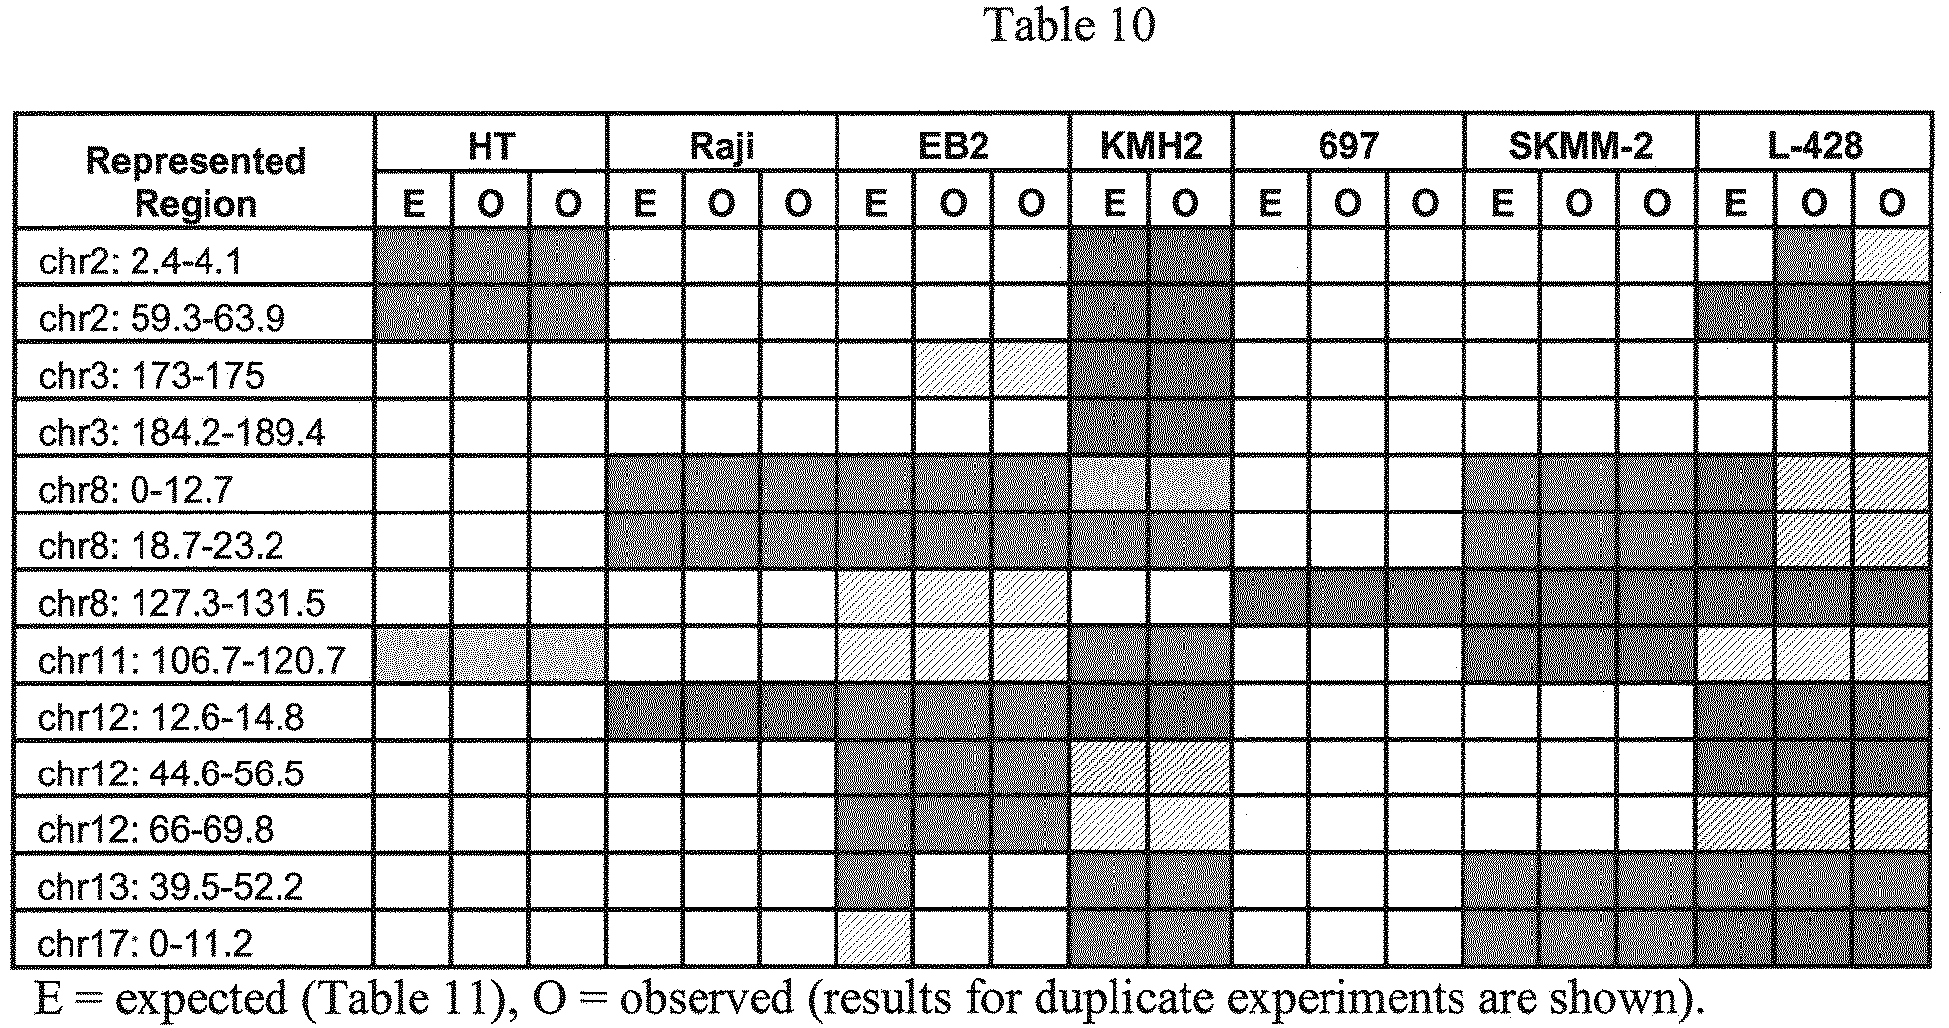 MICROARRAY AND METHOD FOR DIAGNOSIS AND PROGNOSIS OF MATURE